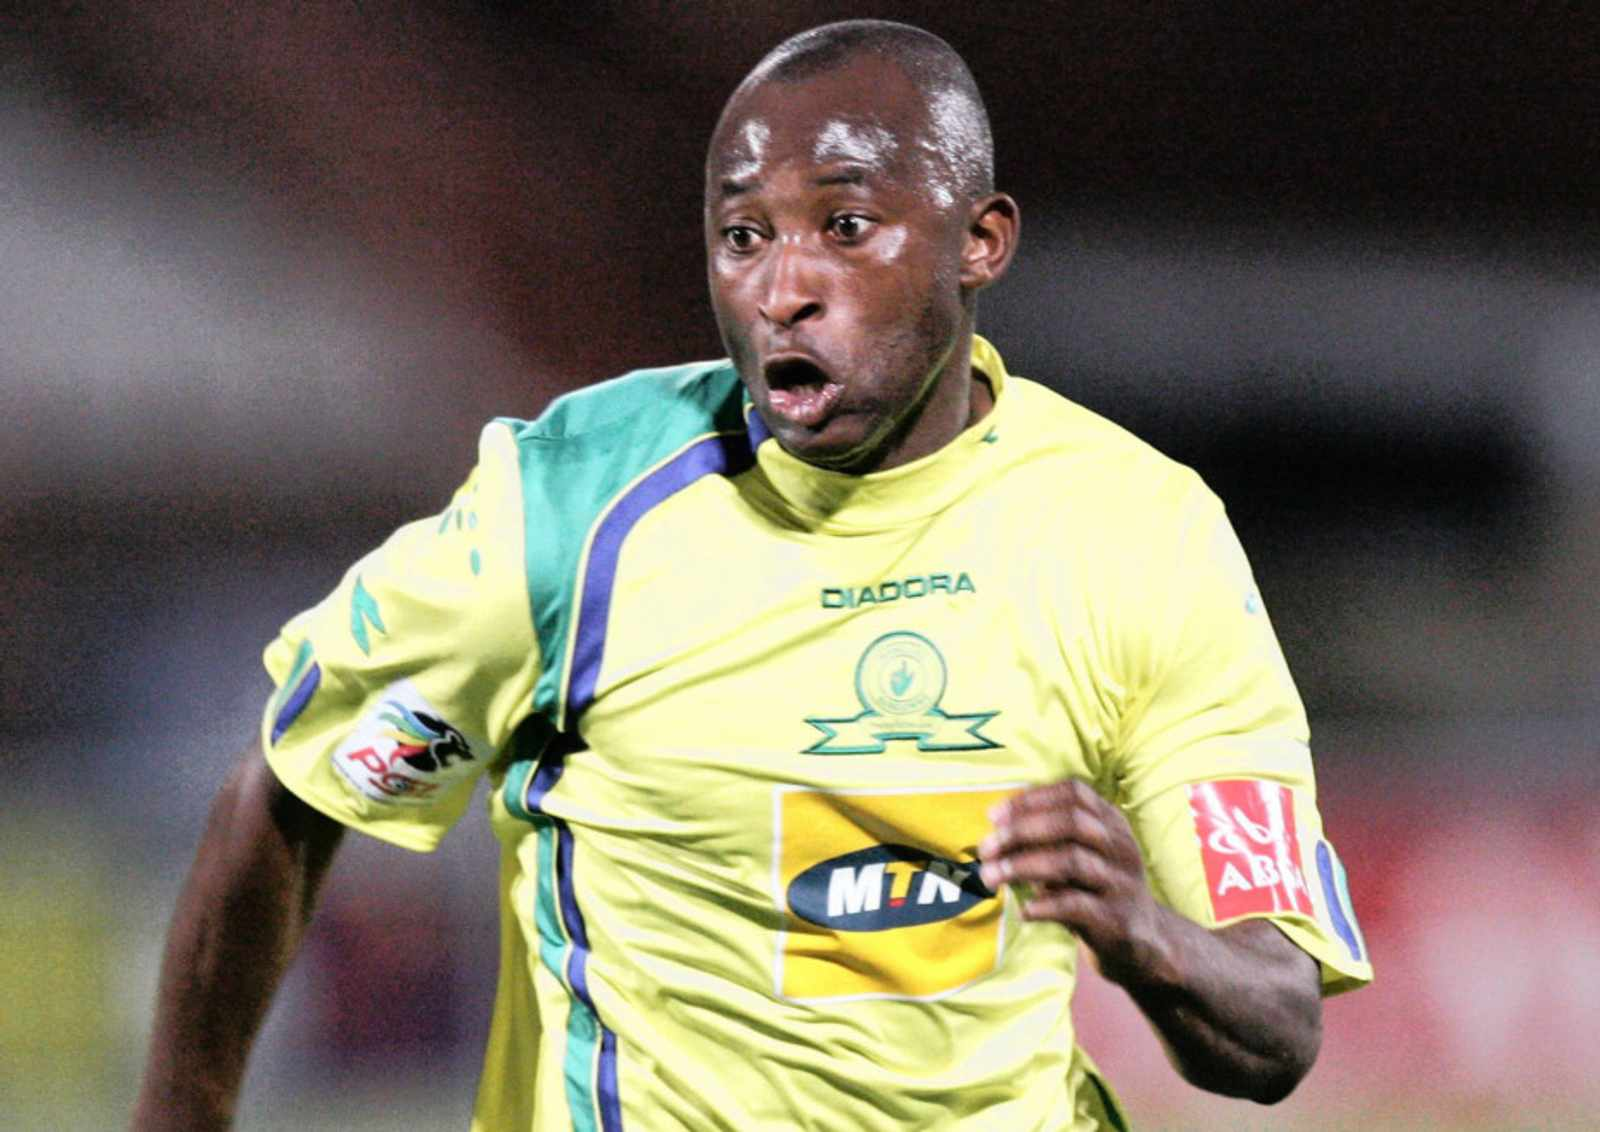 Zimbabwe football star acquitted of manslaughter over